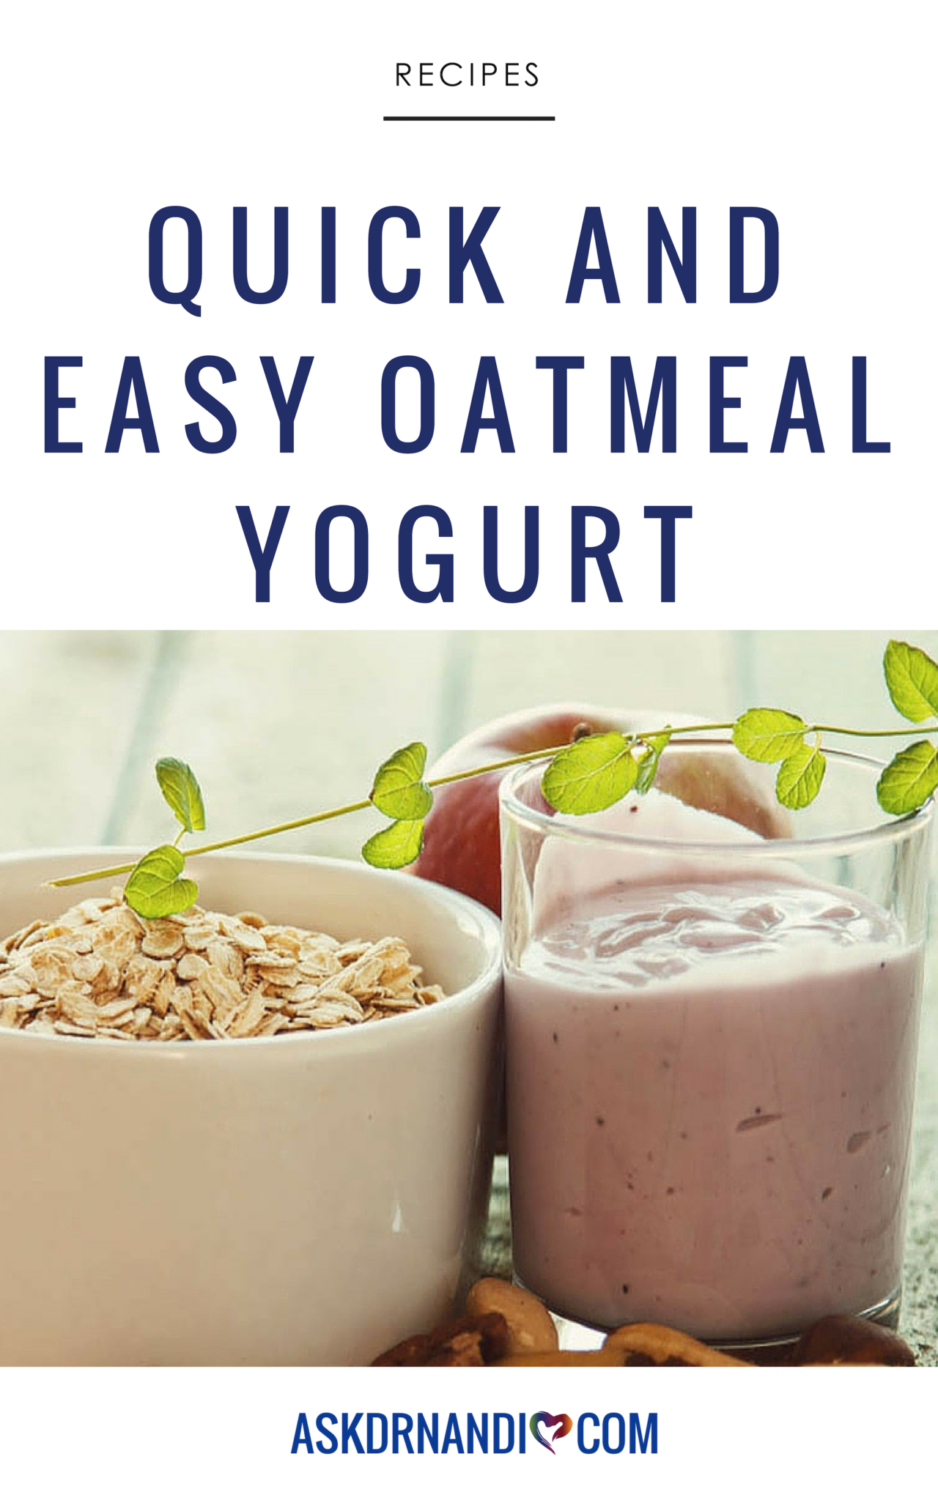 Dr. Nandi's Oatmeal Yogurt